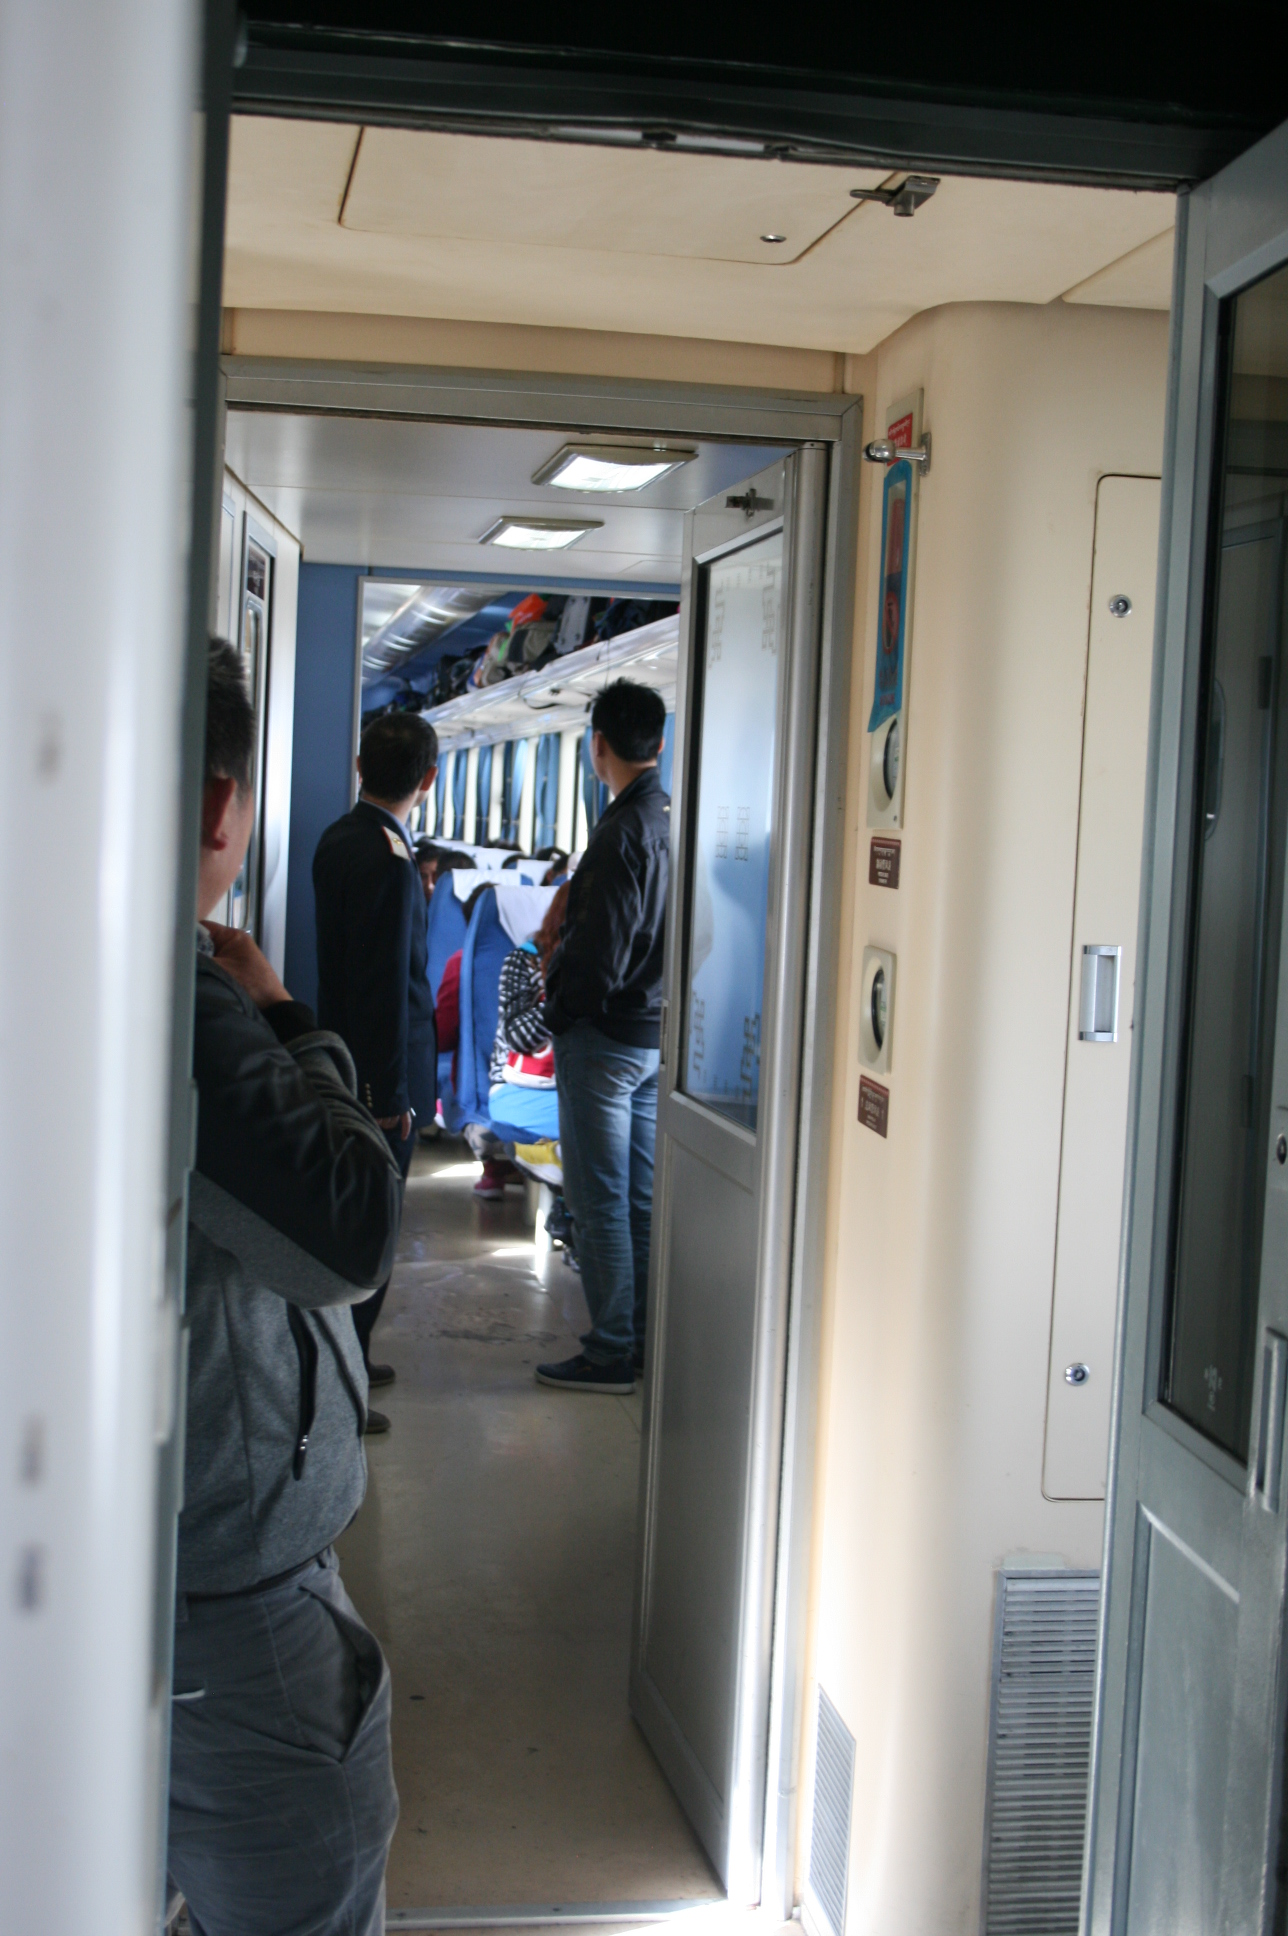 Inside the Lhasa-Shigatse Railway